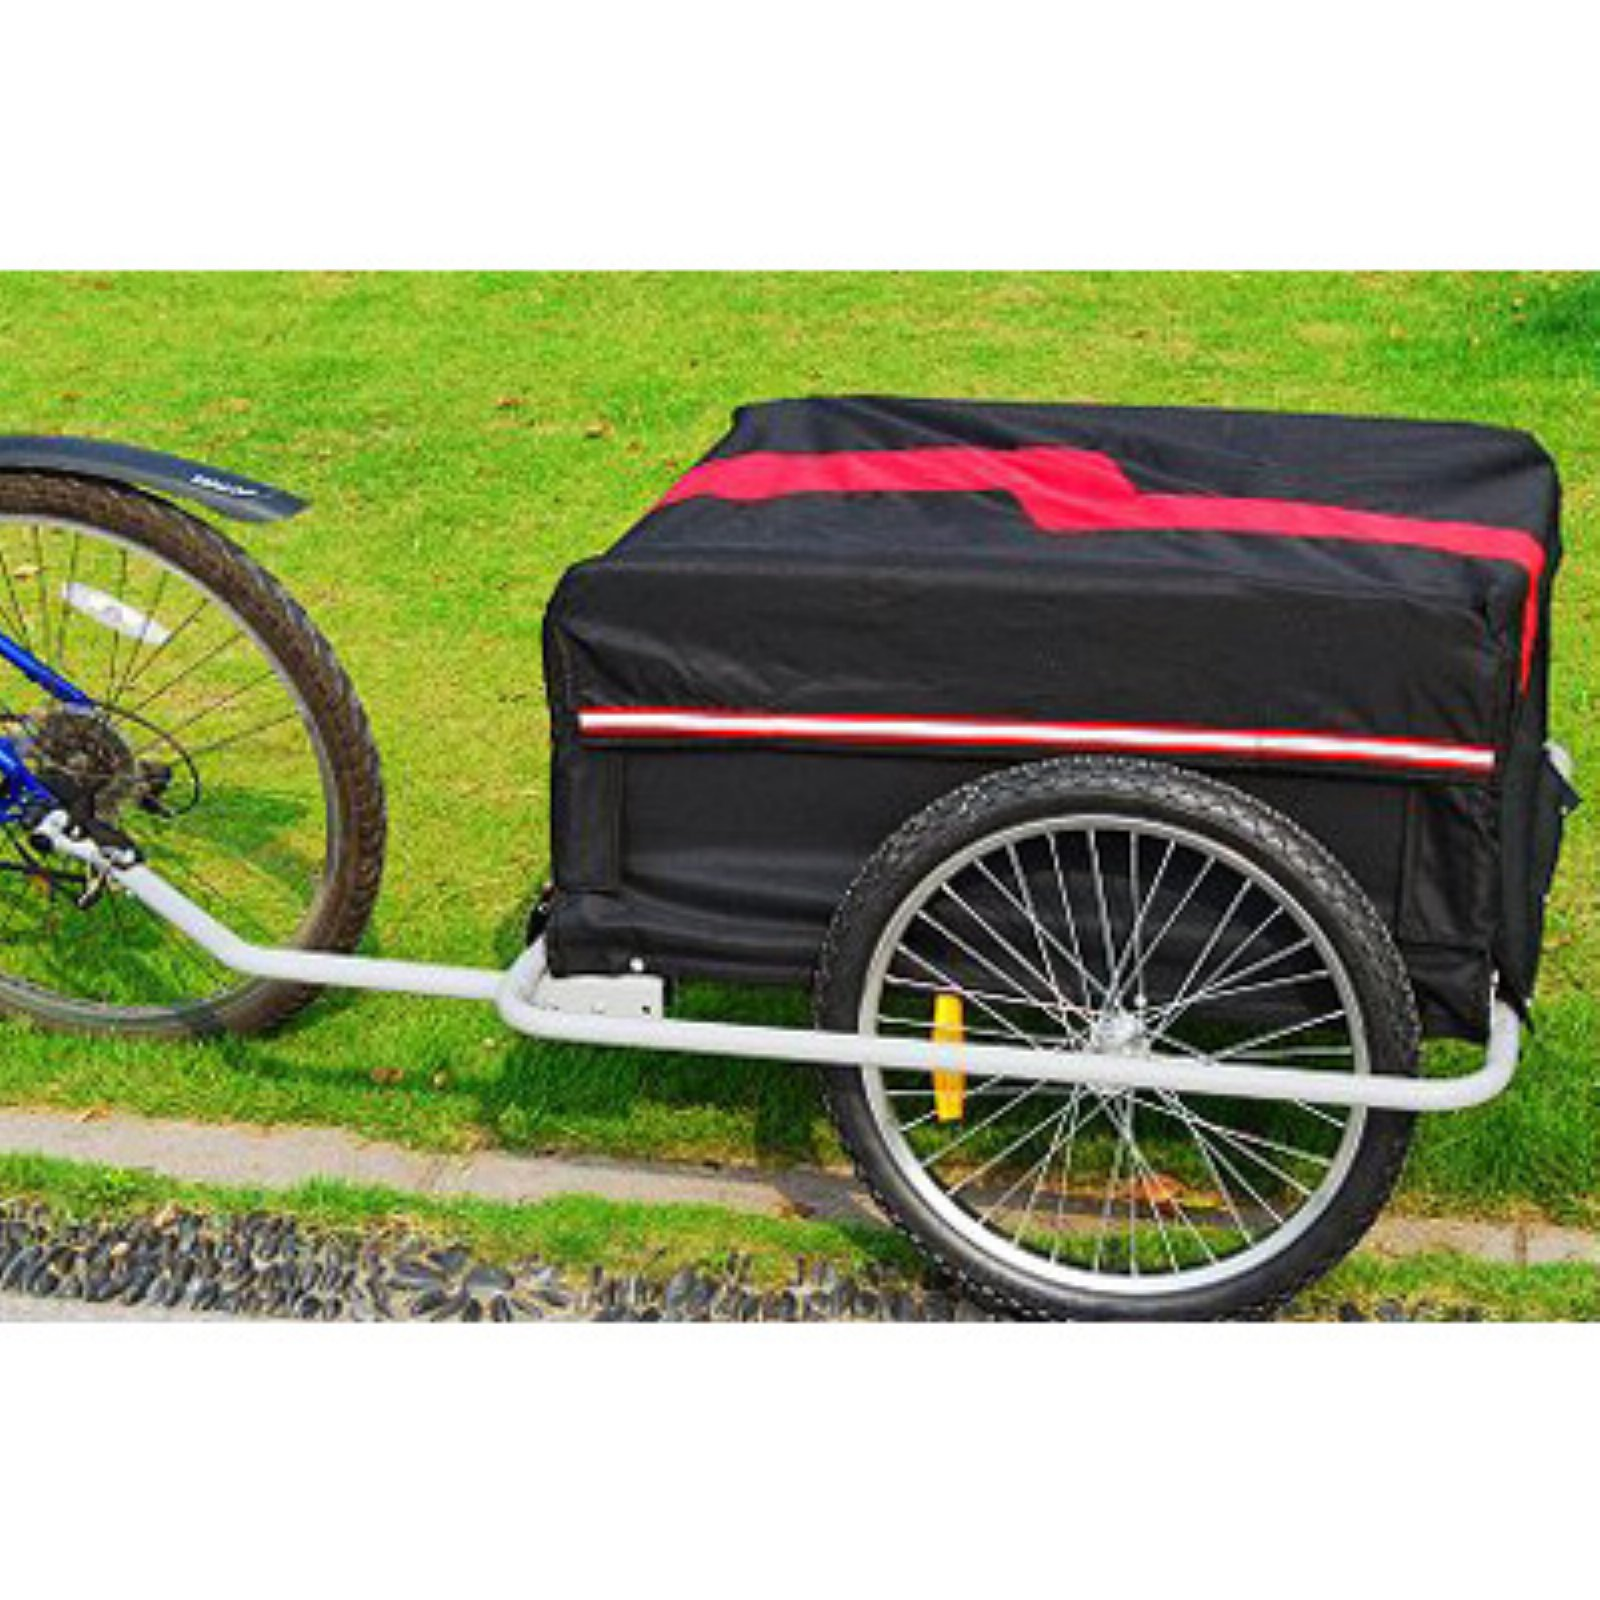 Aosom Elite II Large Bike Cargo Trailer - Black/Red